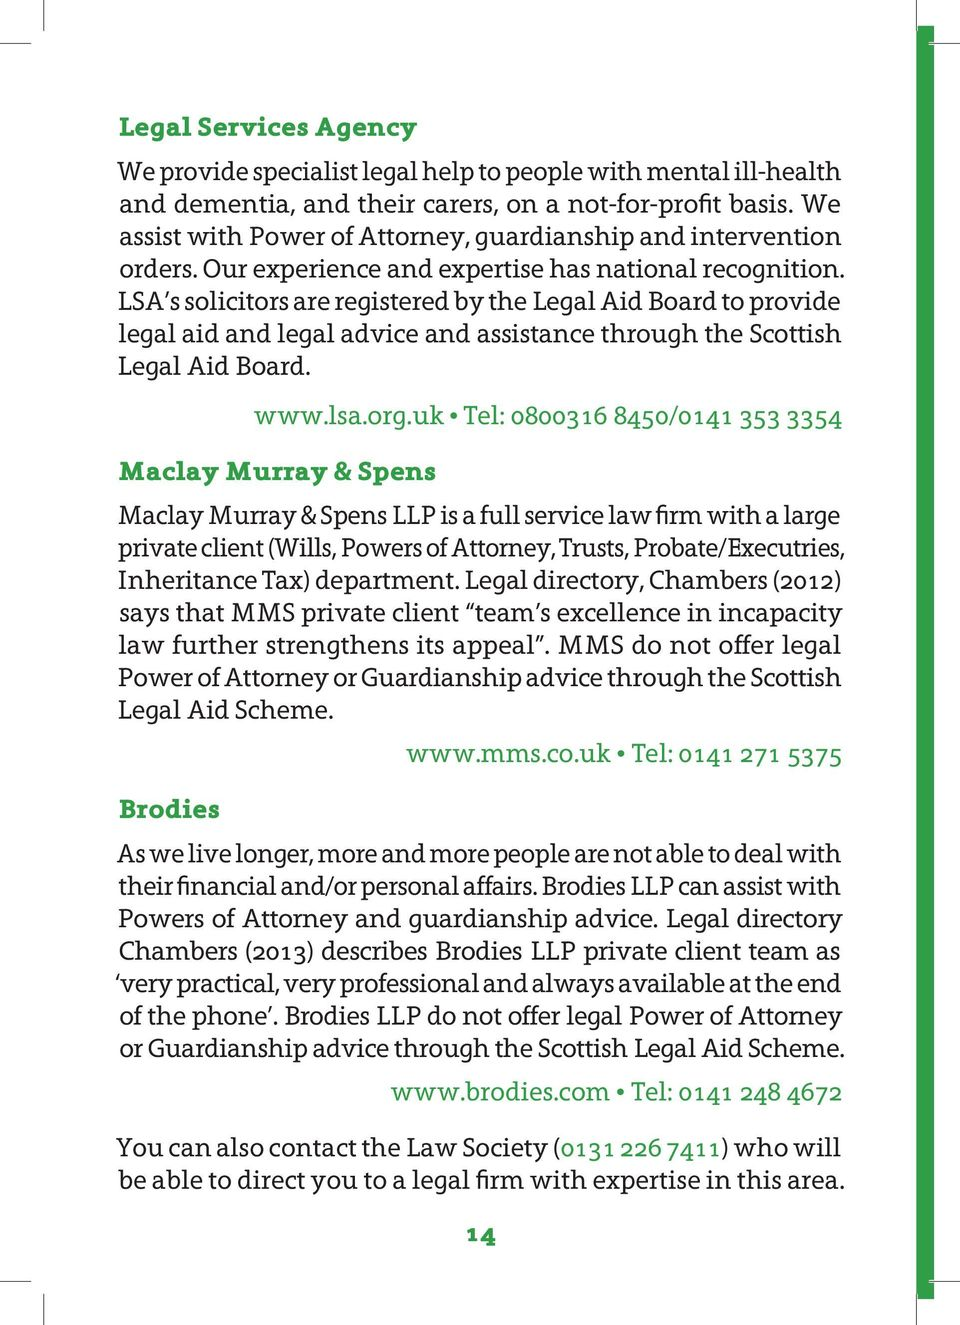 LSA s solicitors are registered by the Legal Aid Board to provide legal aid and legal advice and assistance through the Scottish Legal Aid Board. www.lsa.org.